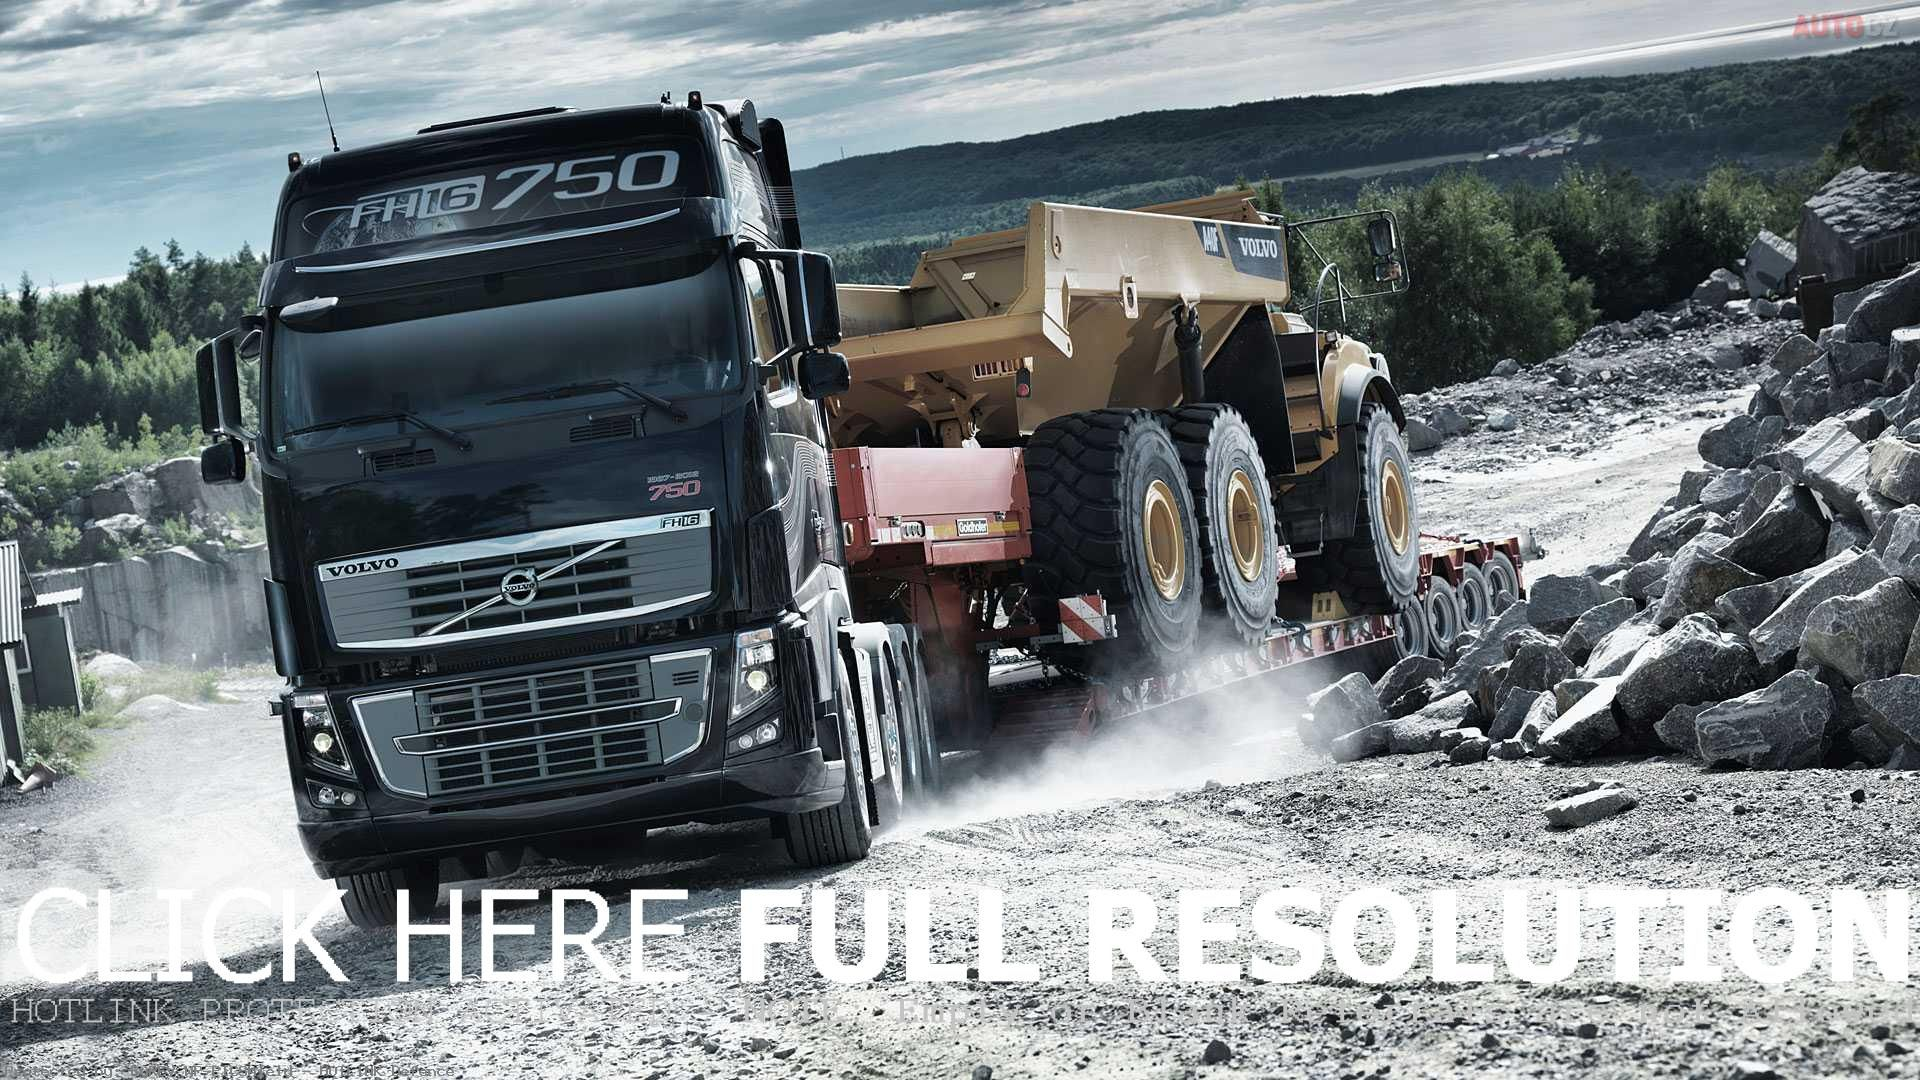 Ford Truck Wallpapers Photo Lifted Mudding Raptor Truck Logo 1920 1080 Truck Wallpapers 56 Wallpapers Adorable Wallpapers Volvo Trucks Trucks Volvo